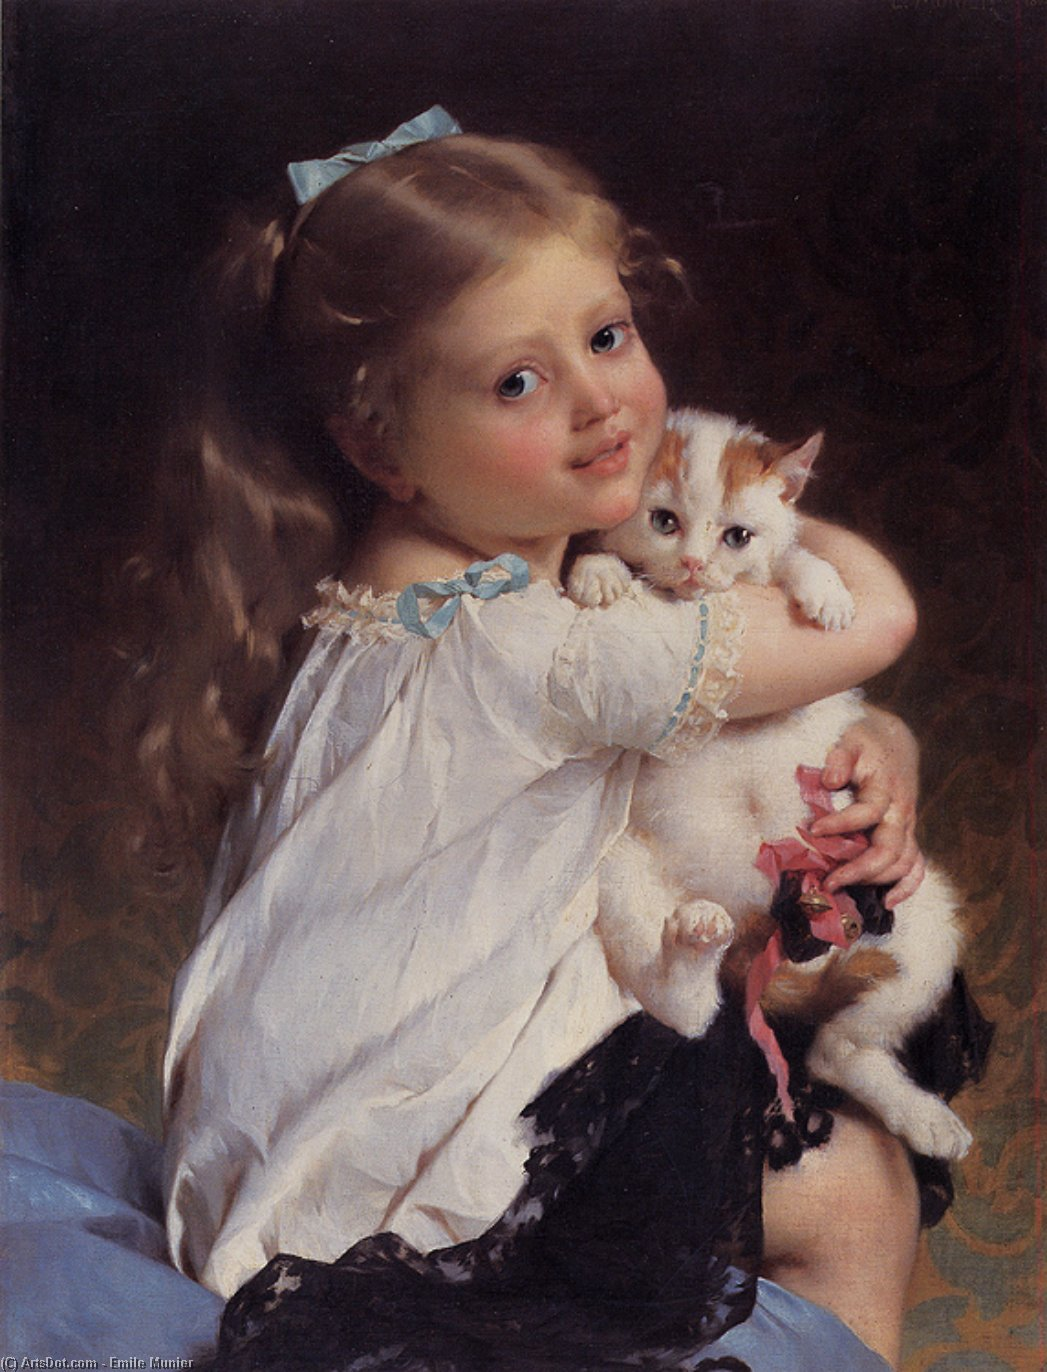 her best friend, 1882 by Emile Munier (1840-1895, France)